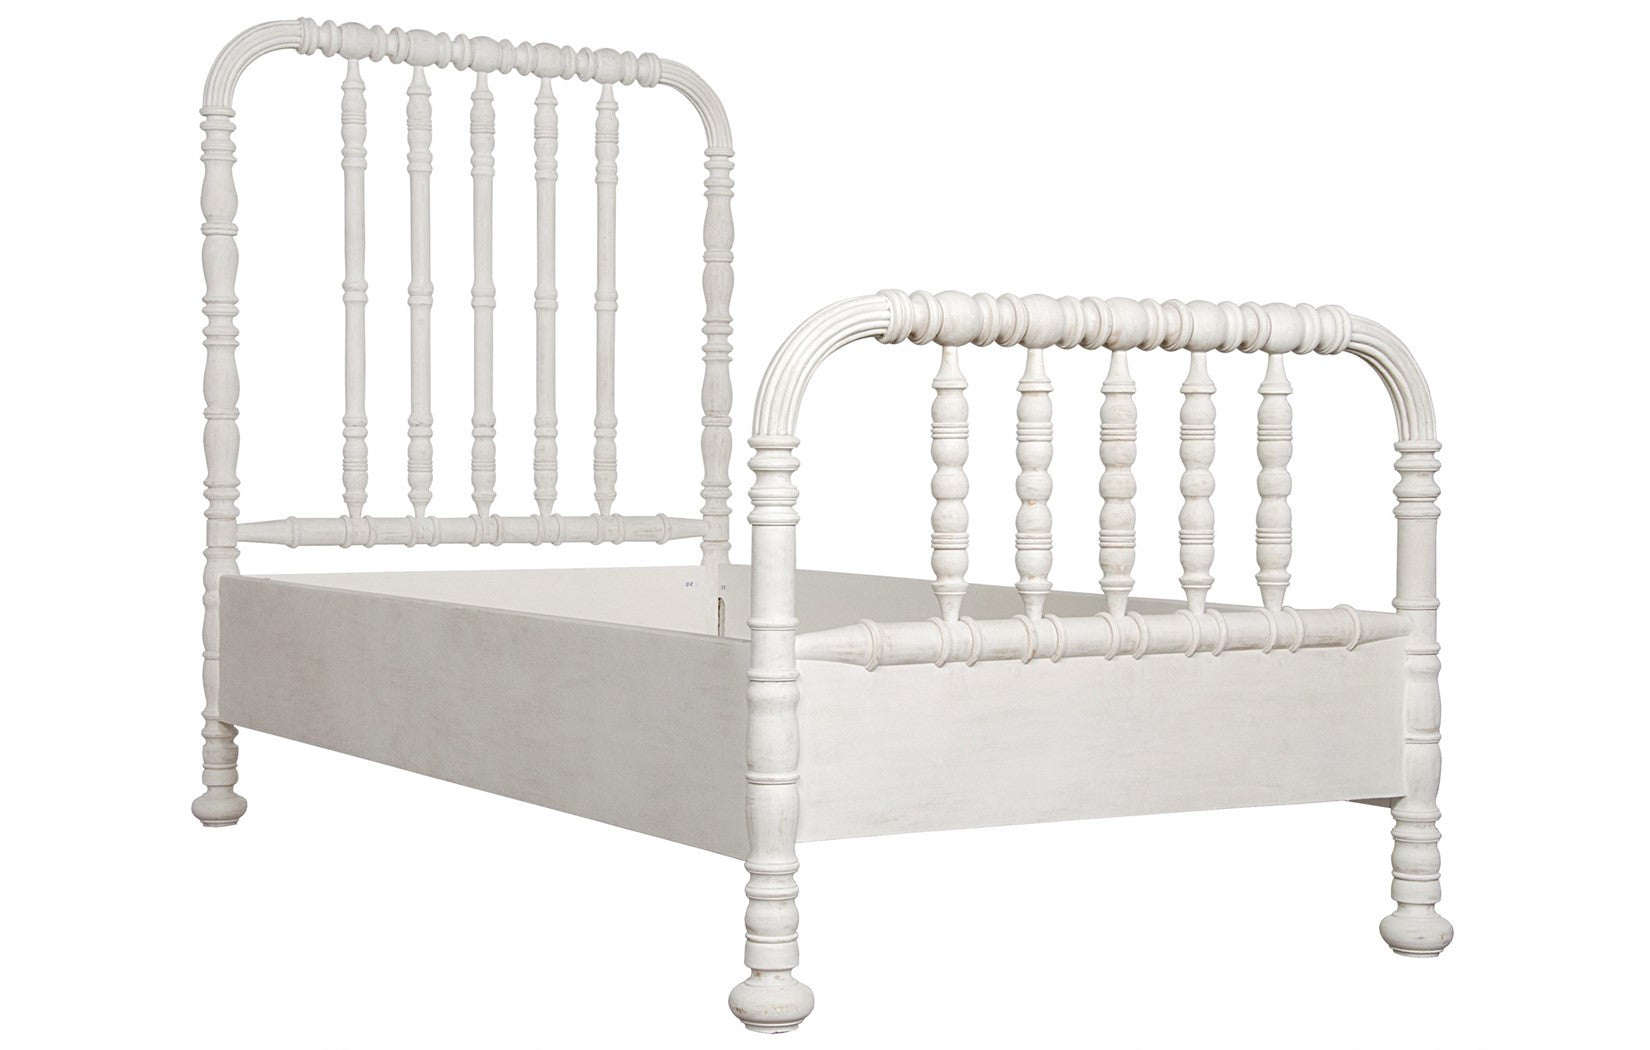 Noir - Bachelor Bed, Queen, White Wash